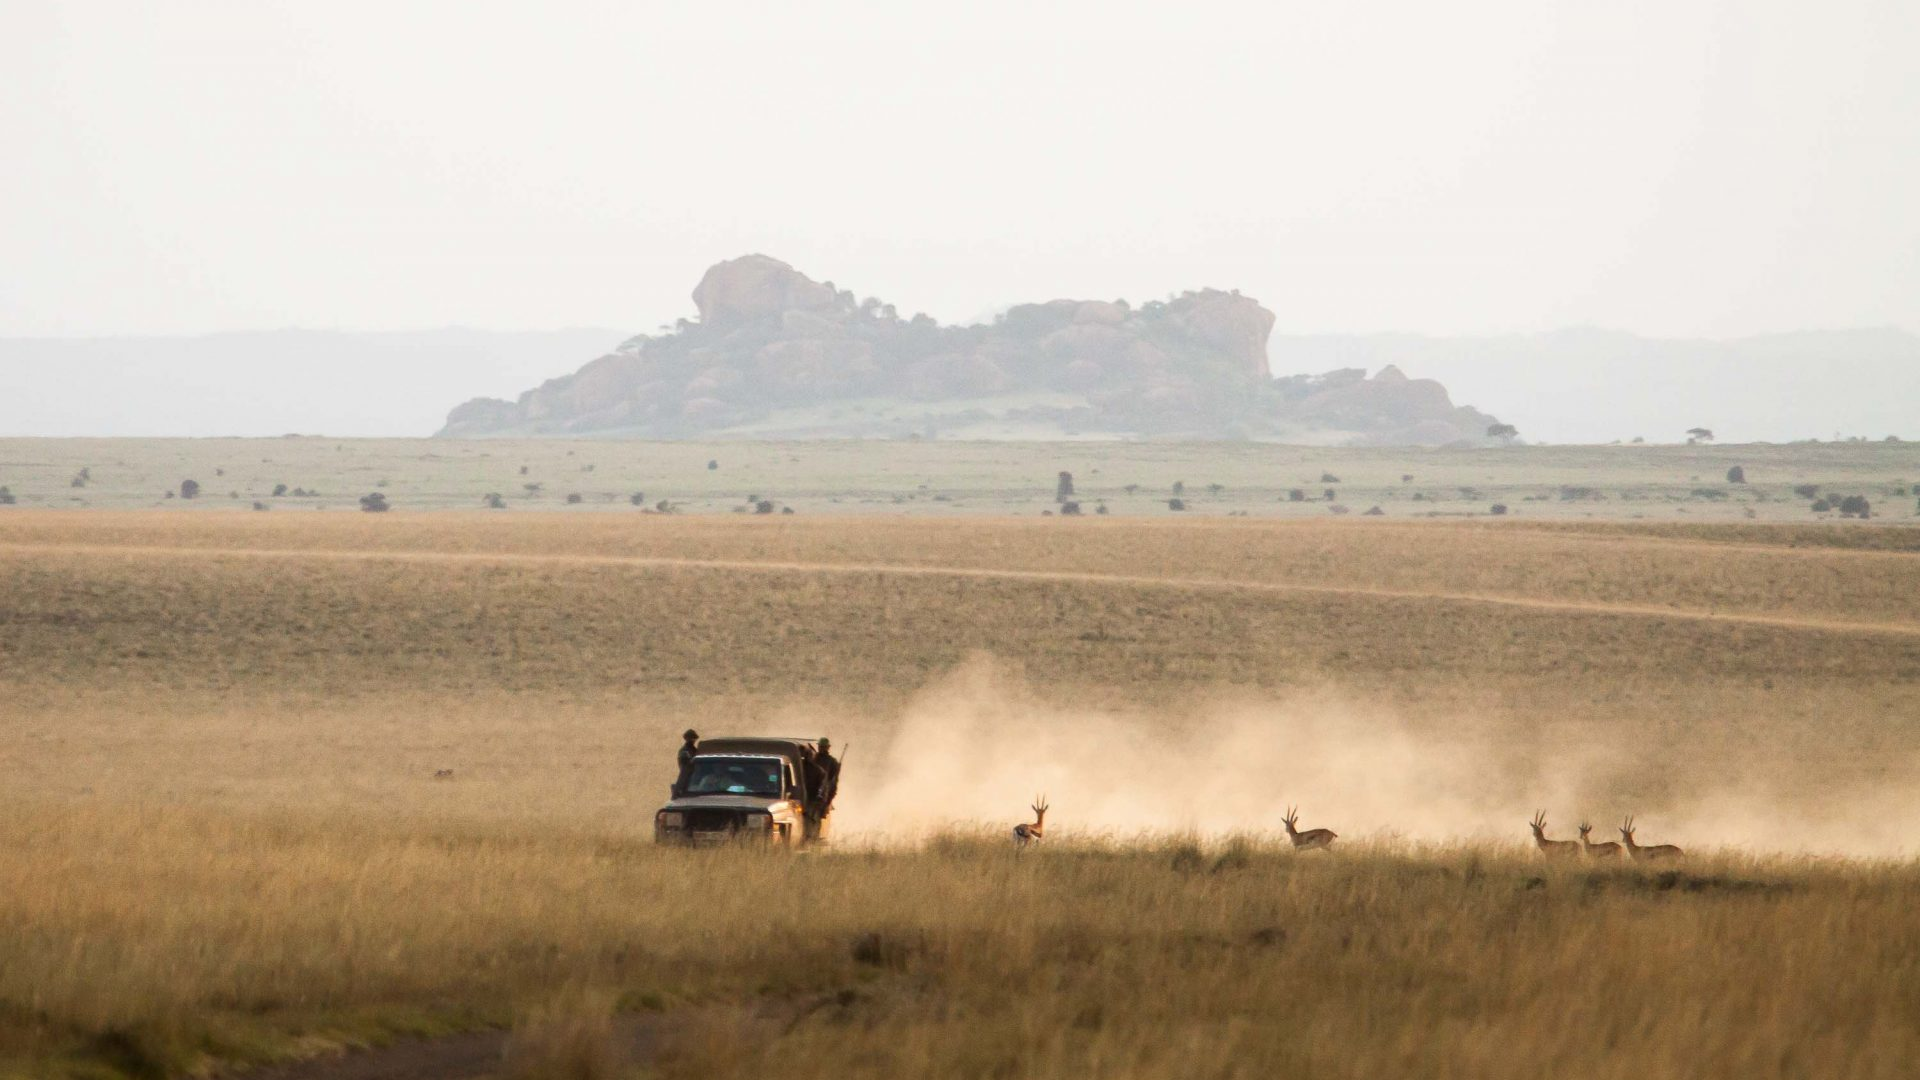 A jeep driven by rangers sends up a cloud of dust in Kenya.